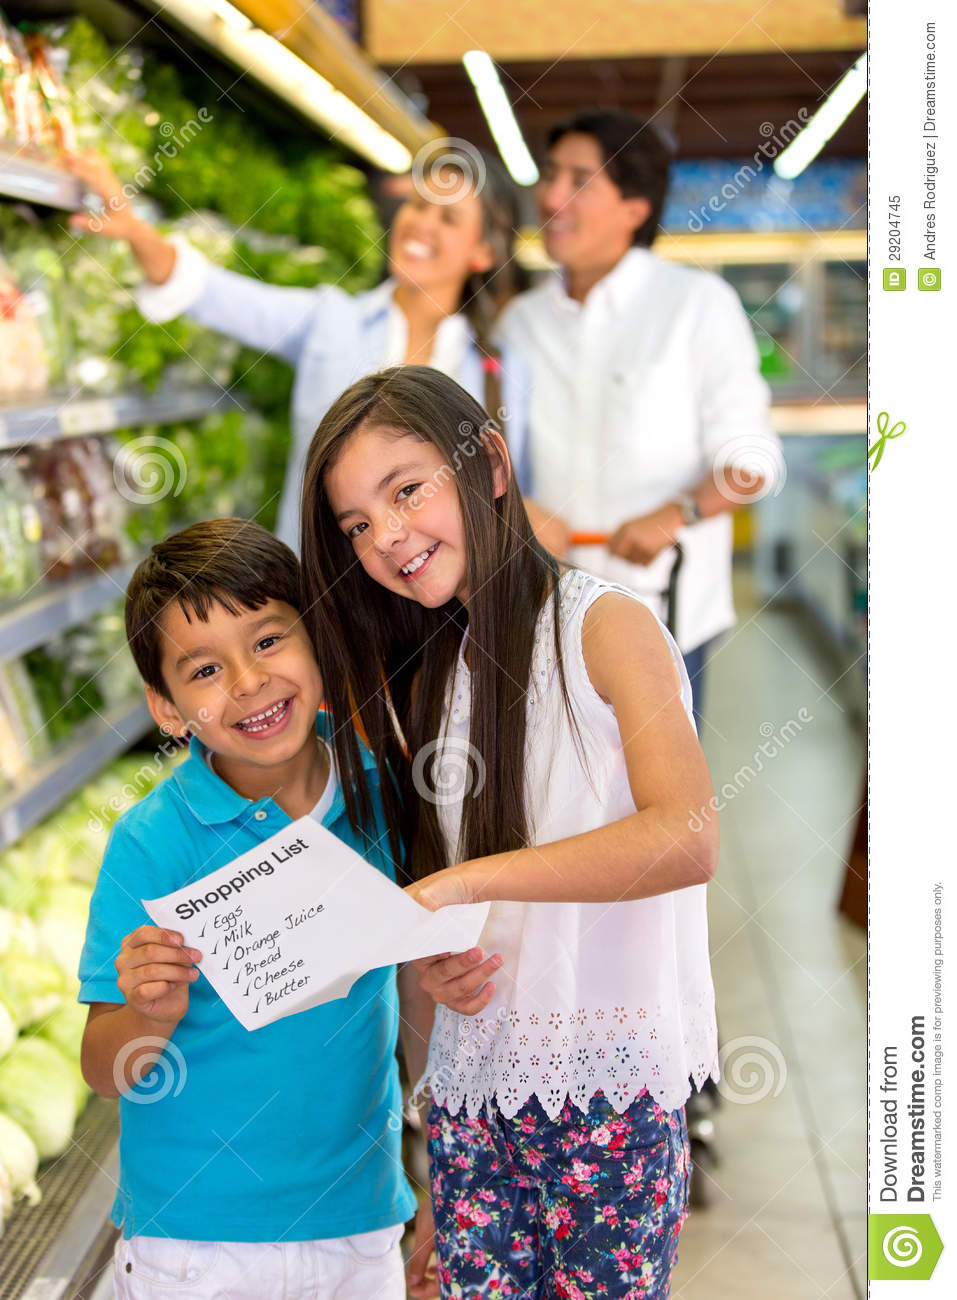 Kids With Shopping List Stock Image Image Of Customers 29204745